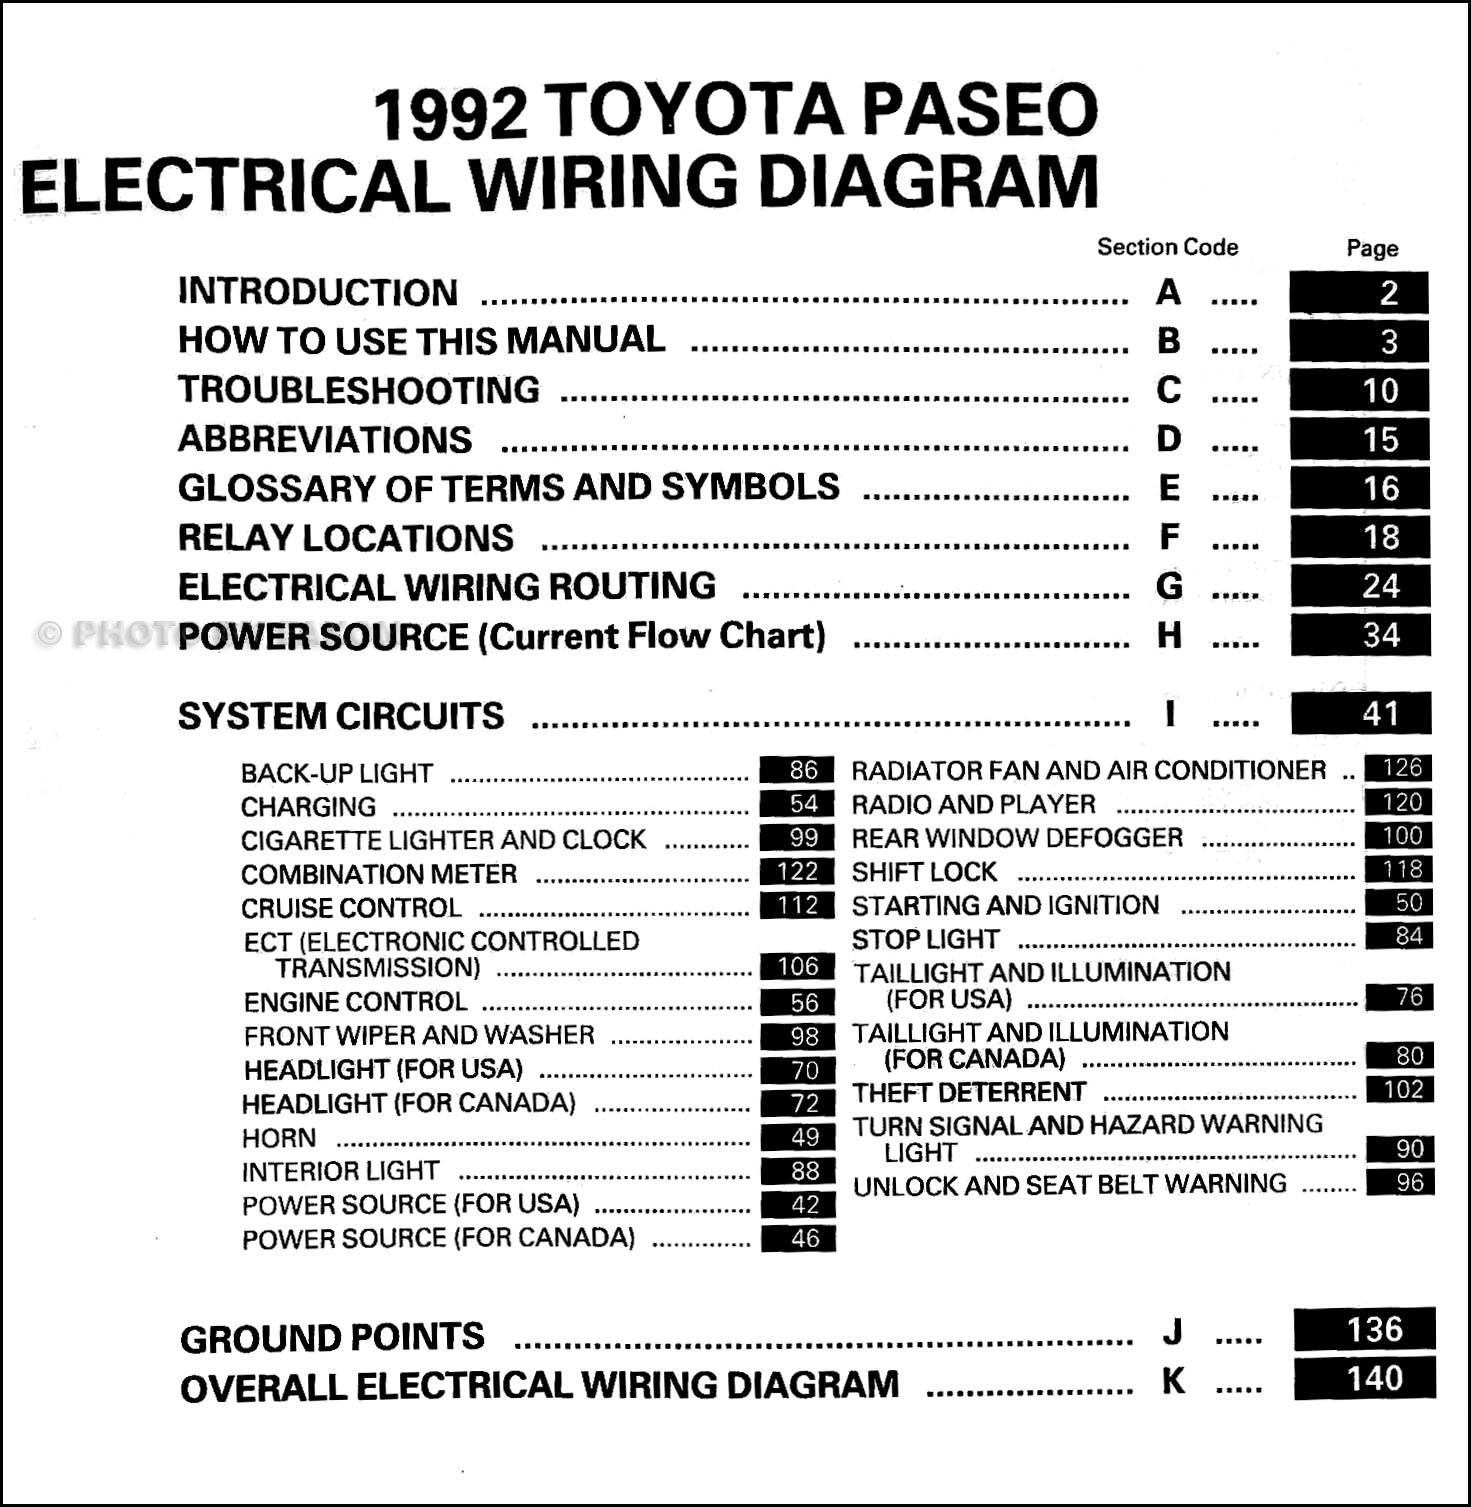 1992ToyotaPaseoOWD TOC 1992 toyota paseo wiring diagram manual original 90 Toyota Paseo at edmiracle.co